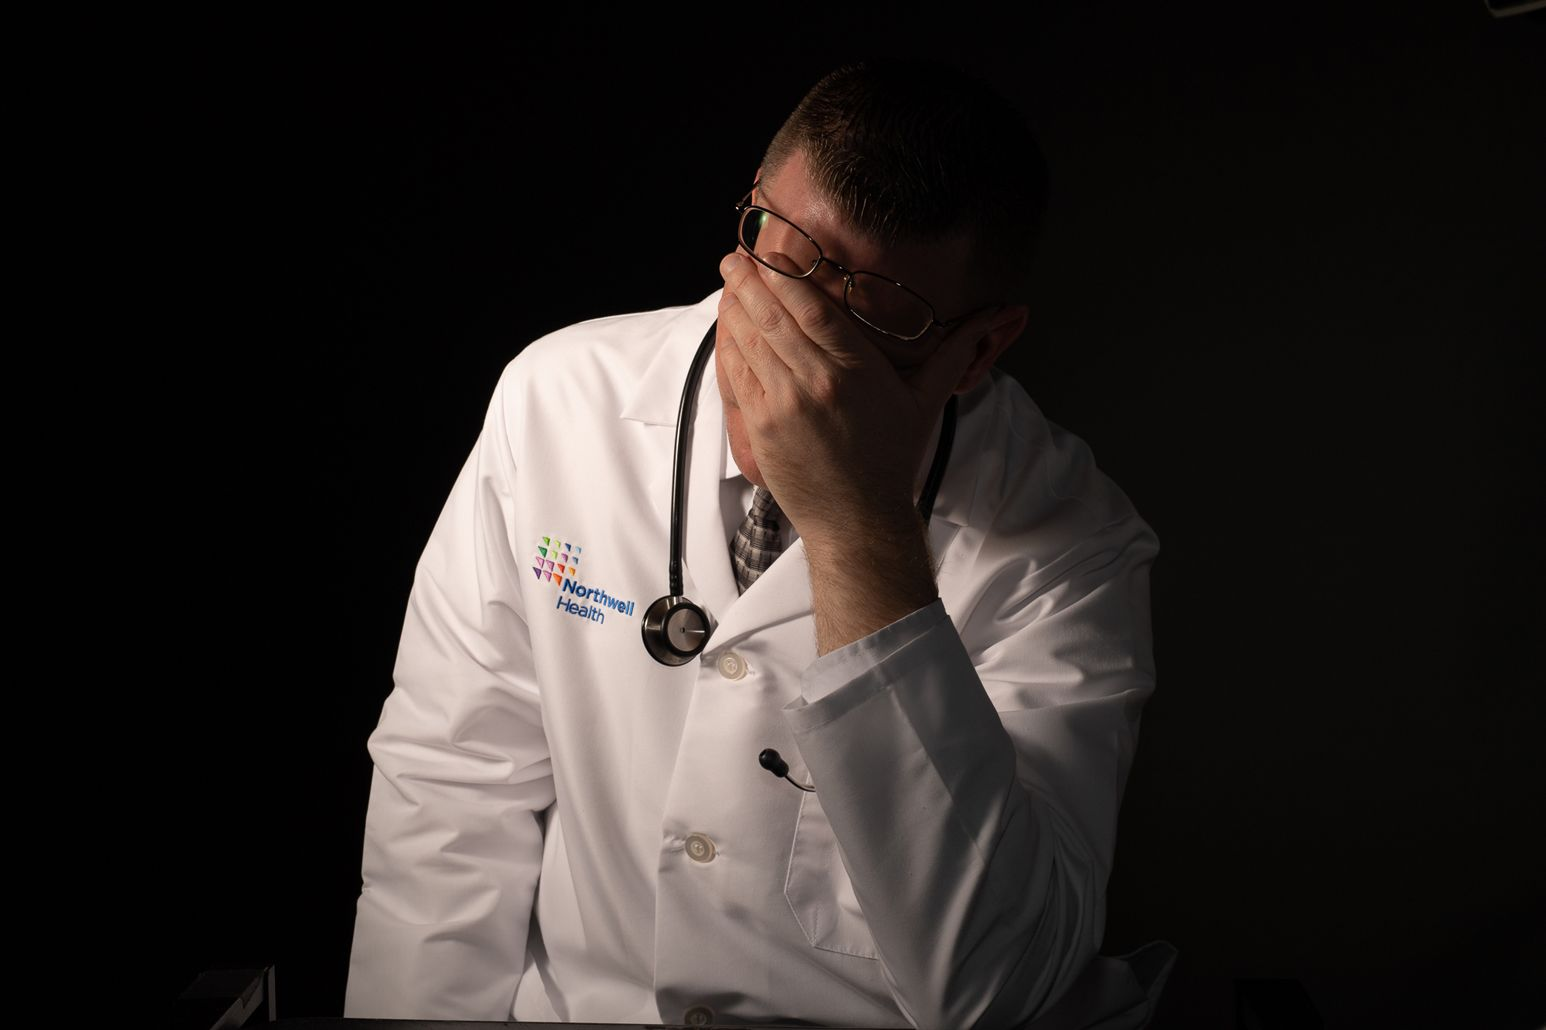 A stressed physician holds his head in his hand. Northwell has taken strides in opening communication and initiating programs to alleviate physician burnout.